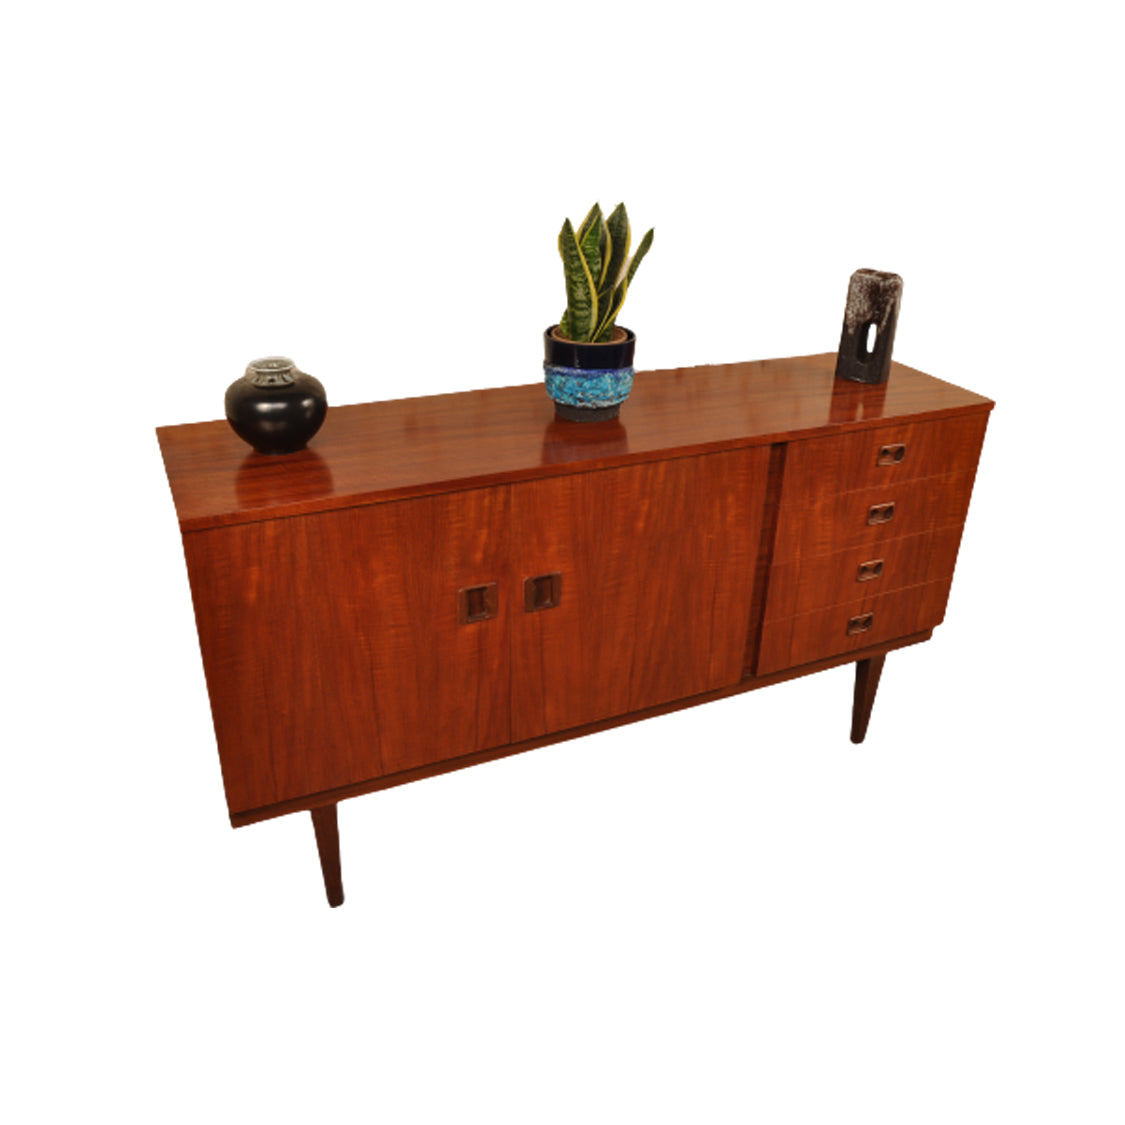 1960's Zebrano Teak and Afromosia Sideboard / Drinks Cabinet